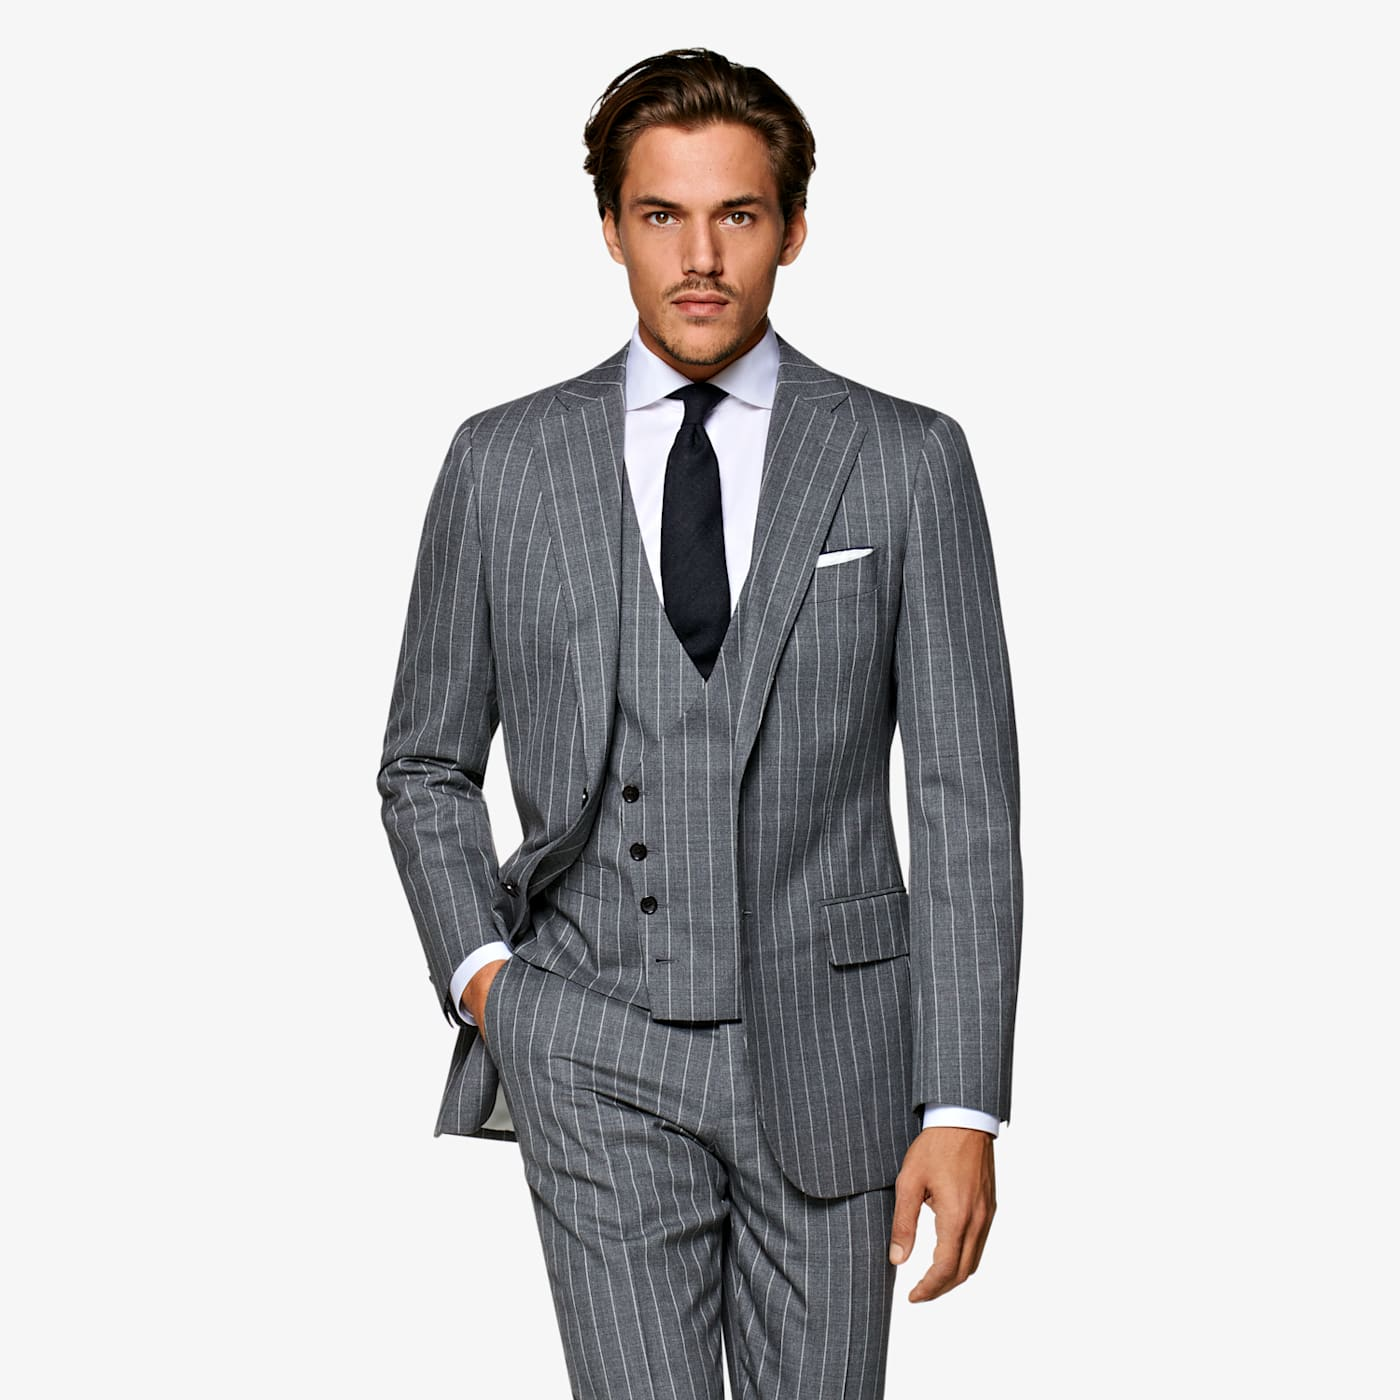 1920s Men's Suits History Light Grey Stripe Lazio Suit $499.00 AT vintagedancer.com